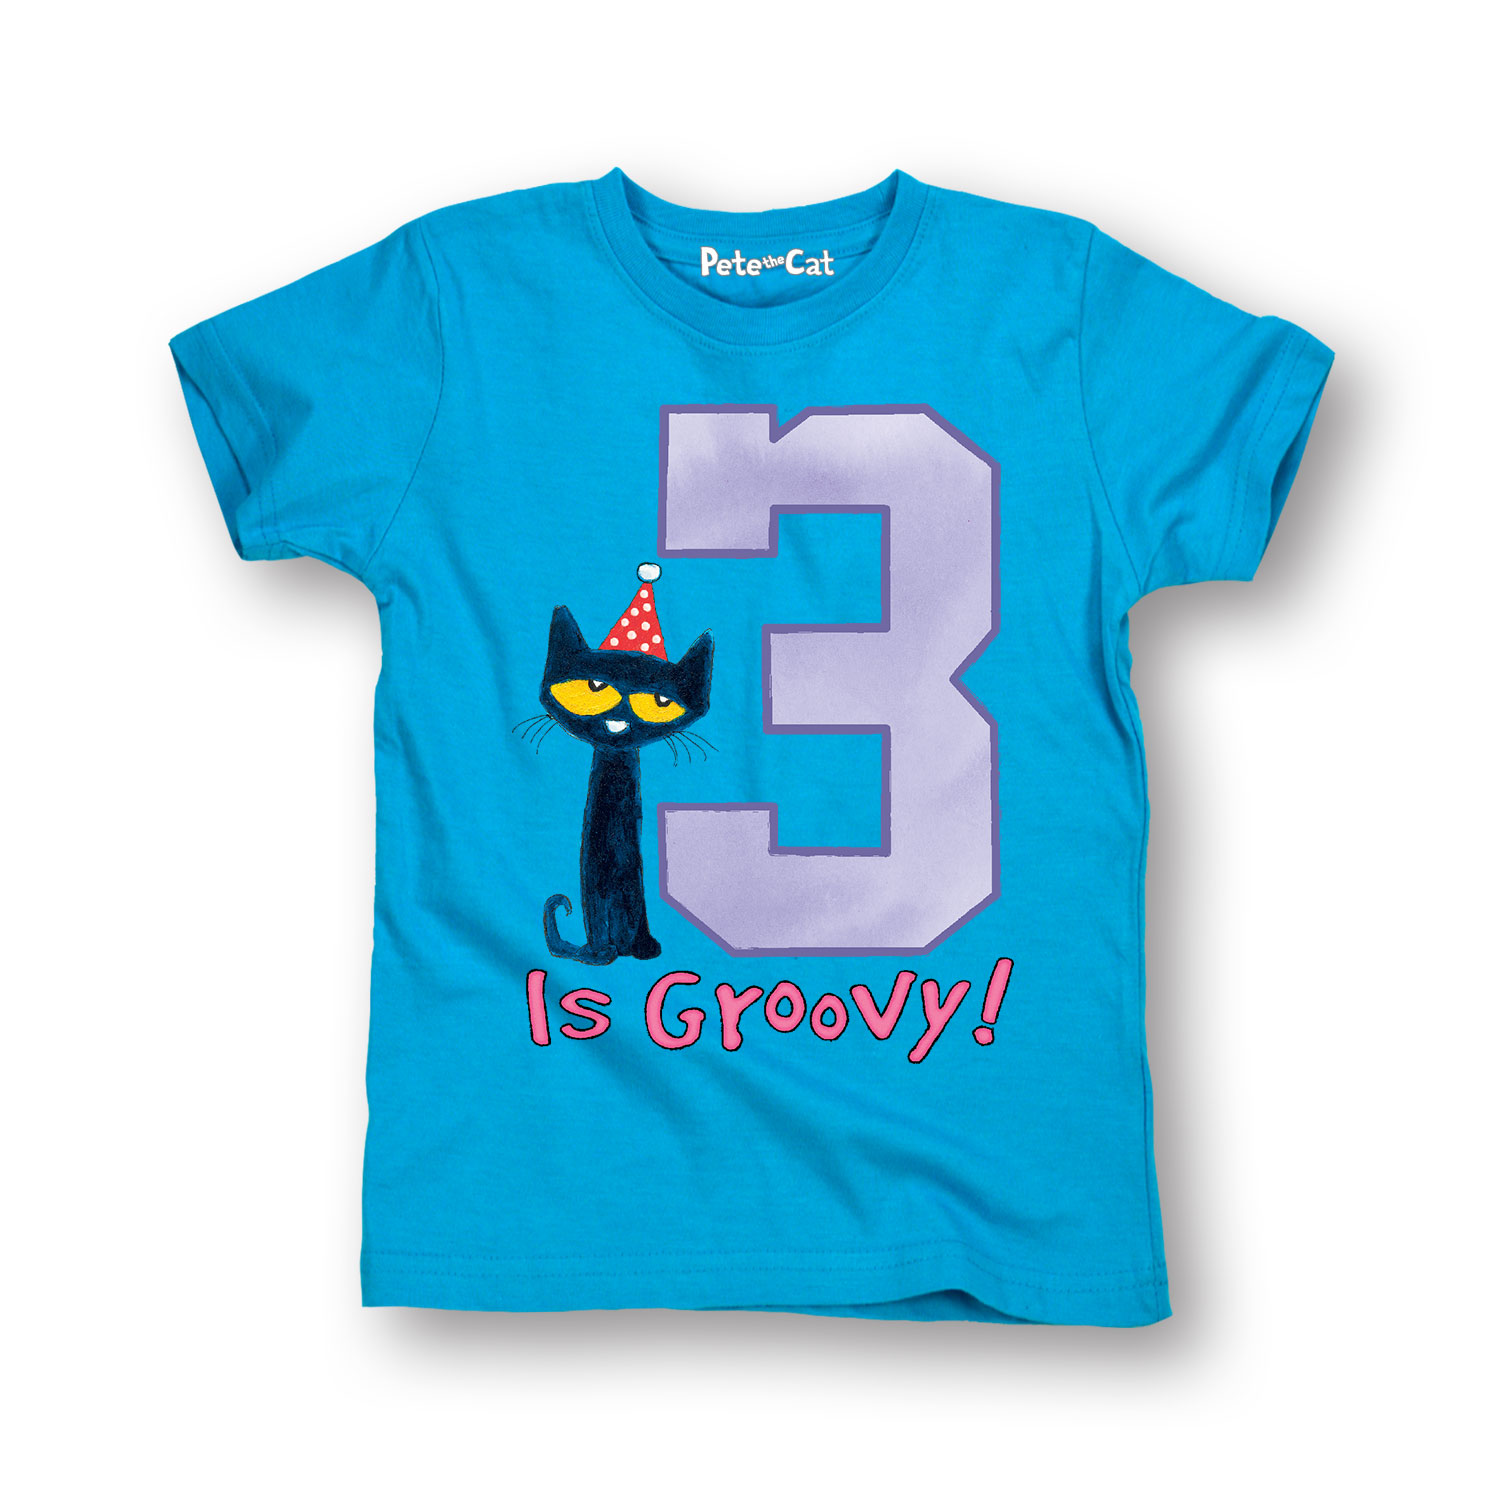 Pete The Cat 3Rd Birthday Girls - Toddler Short Sleeve Tee